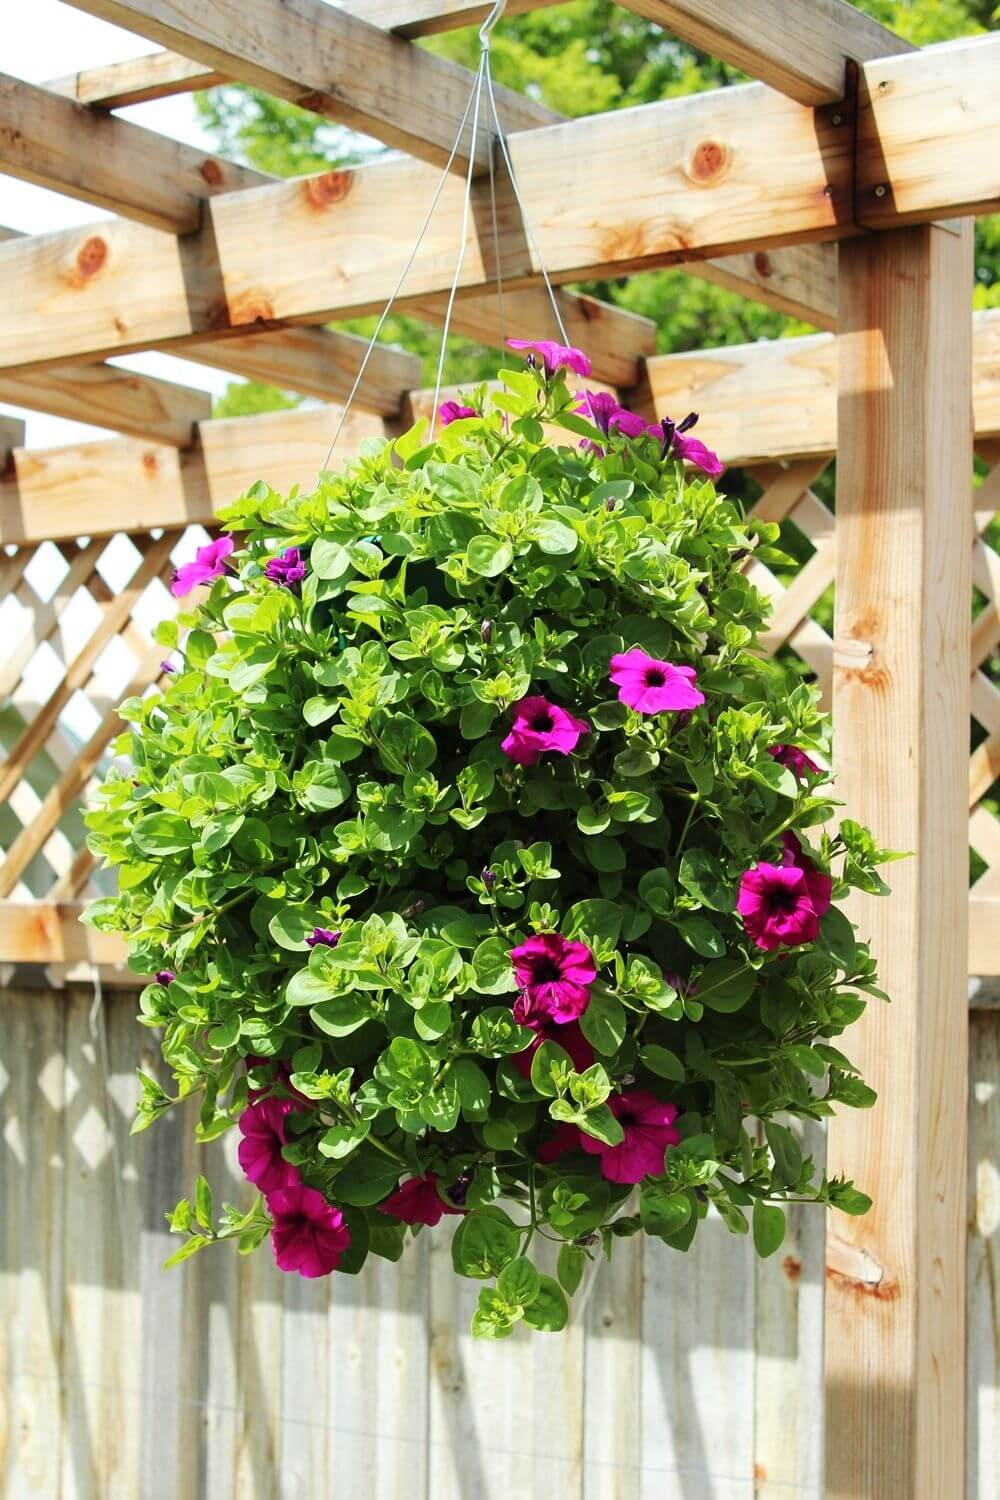 Wall Hanging Baskets For Plants